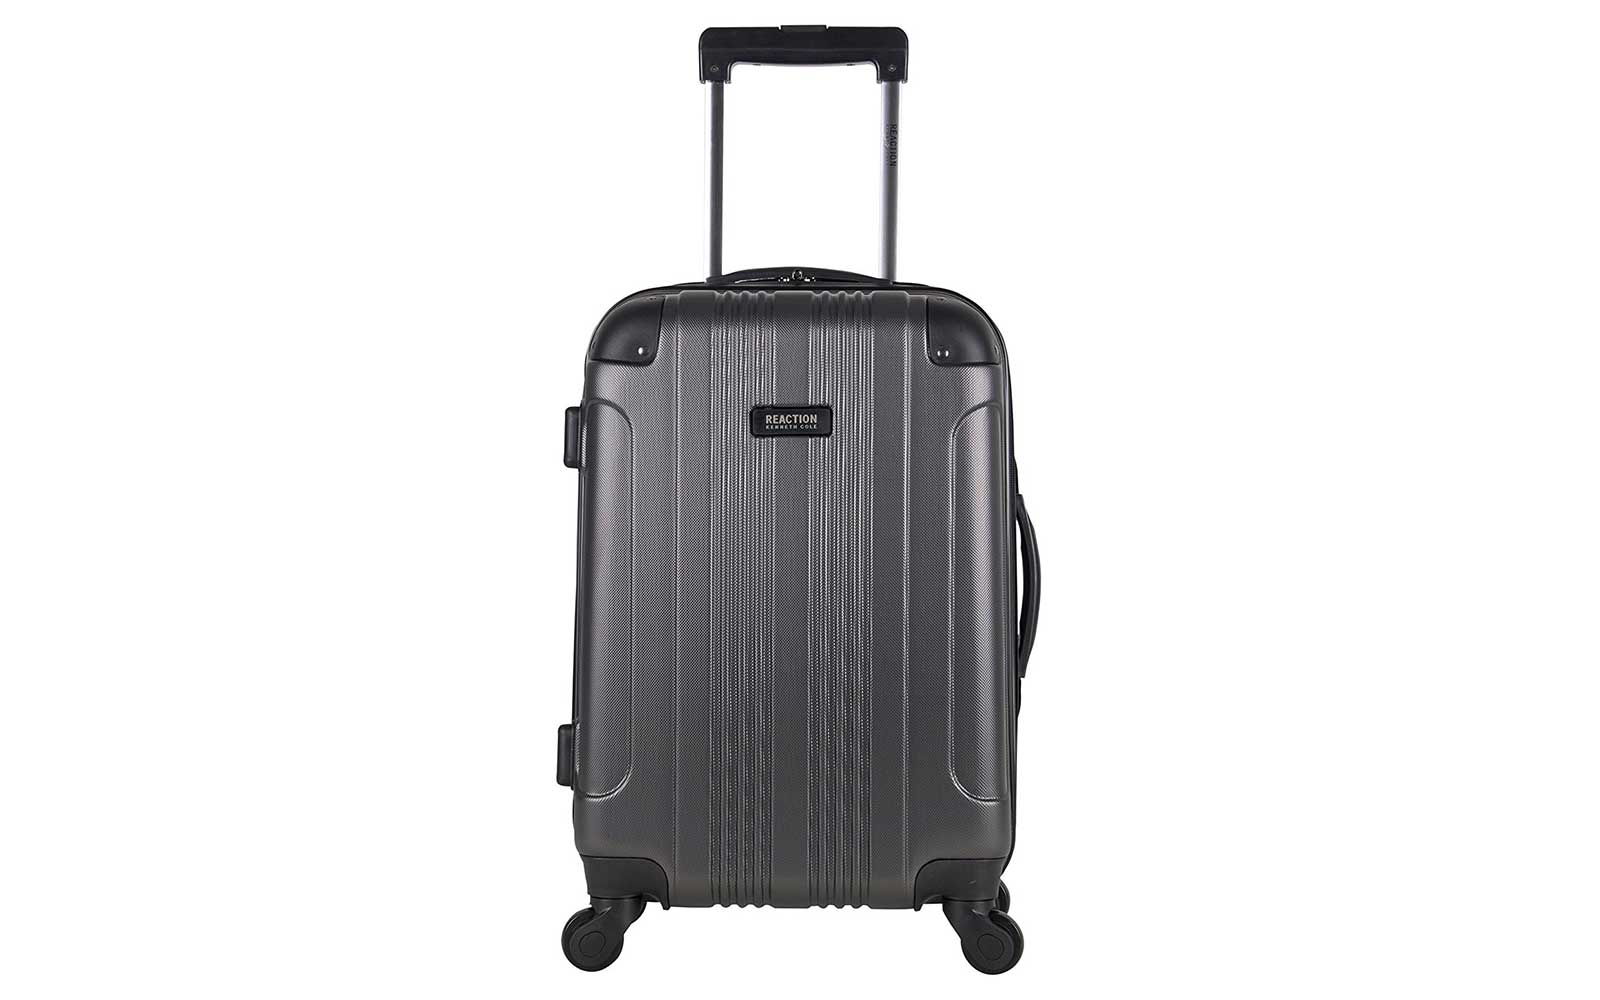 Kenneth Cole Reaction Out of Bounds 20-inch Carry-on